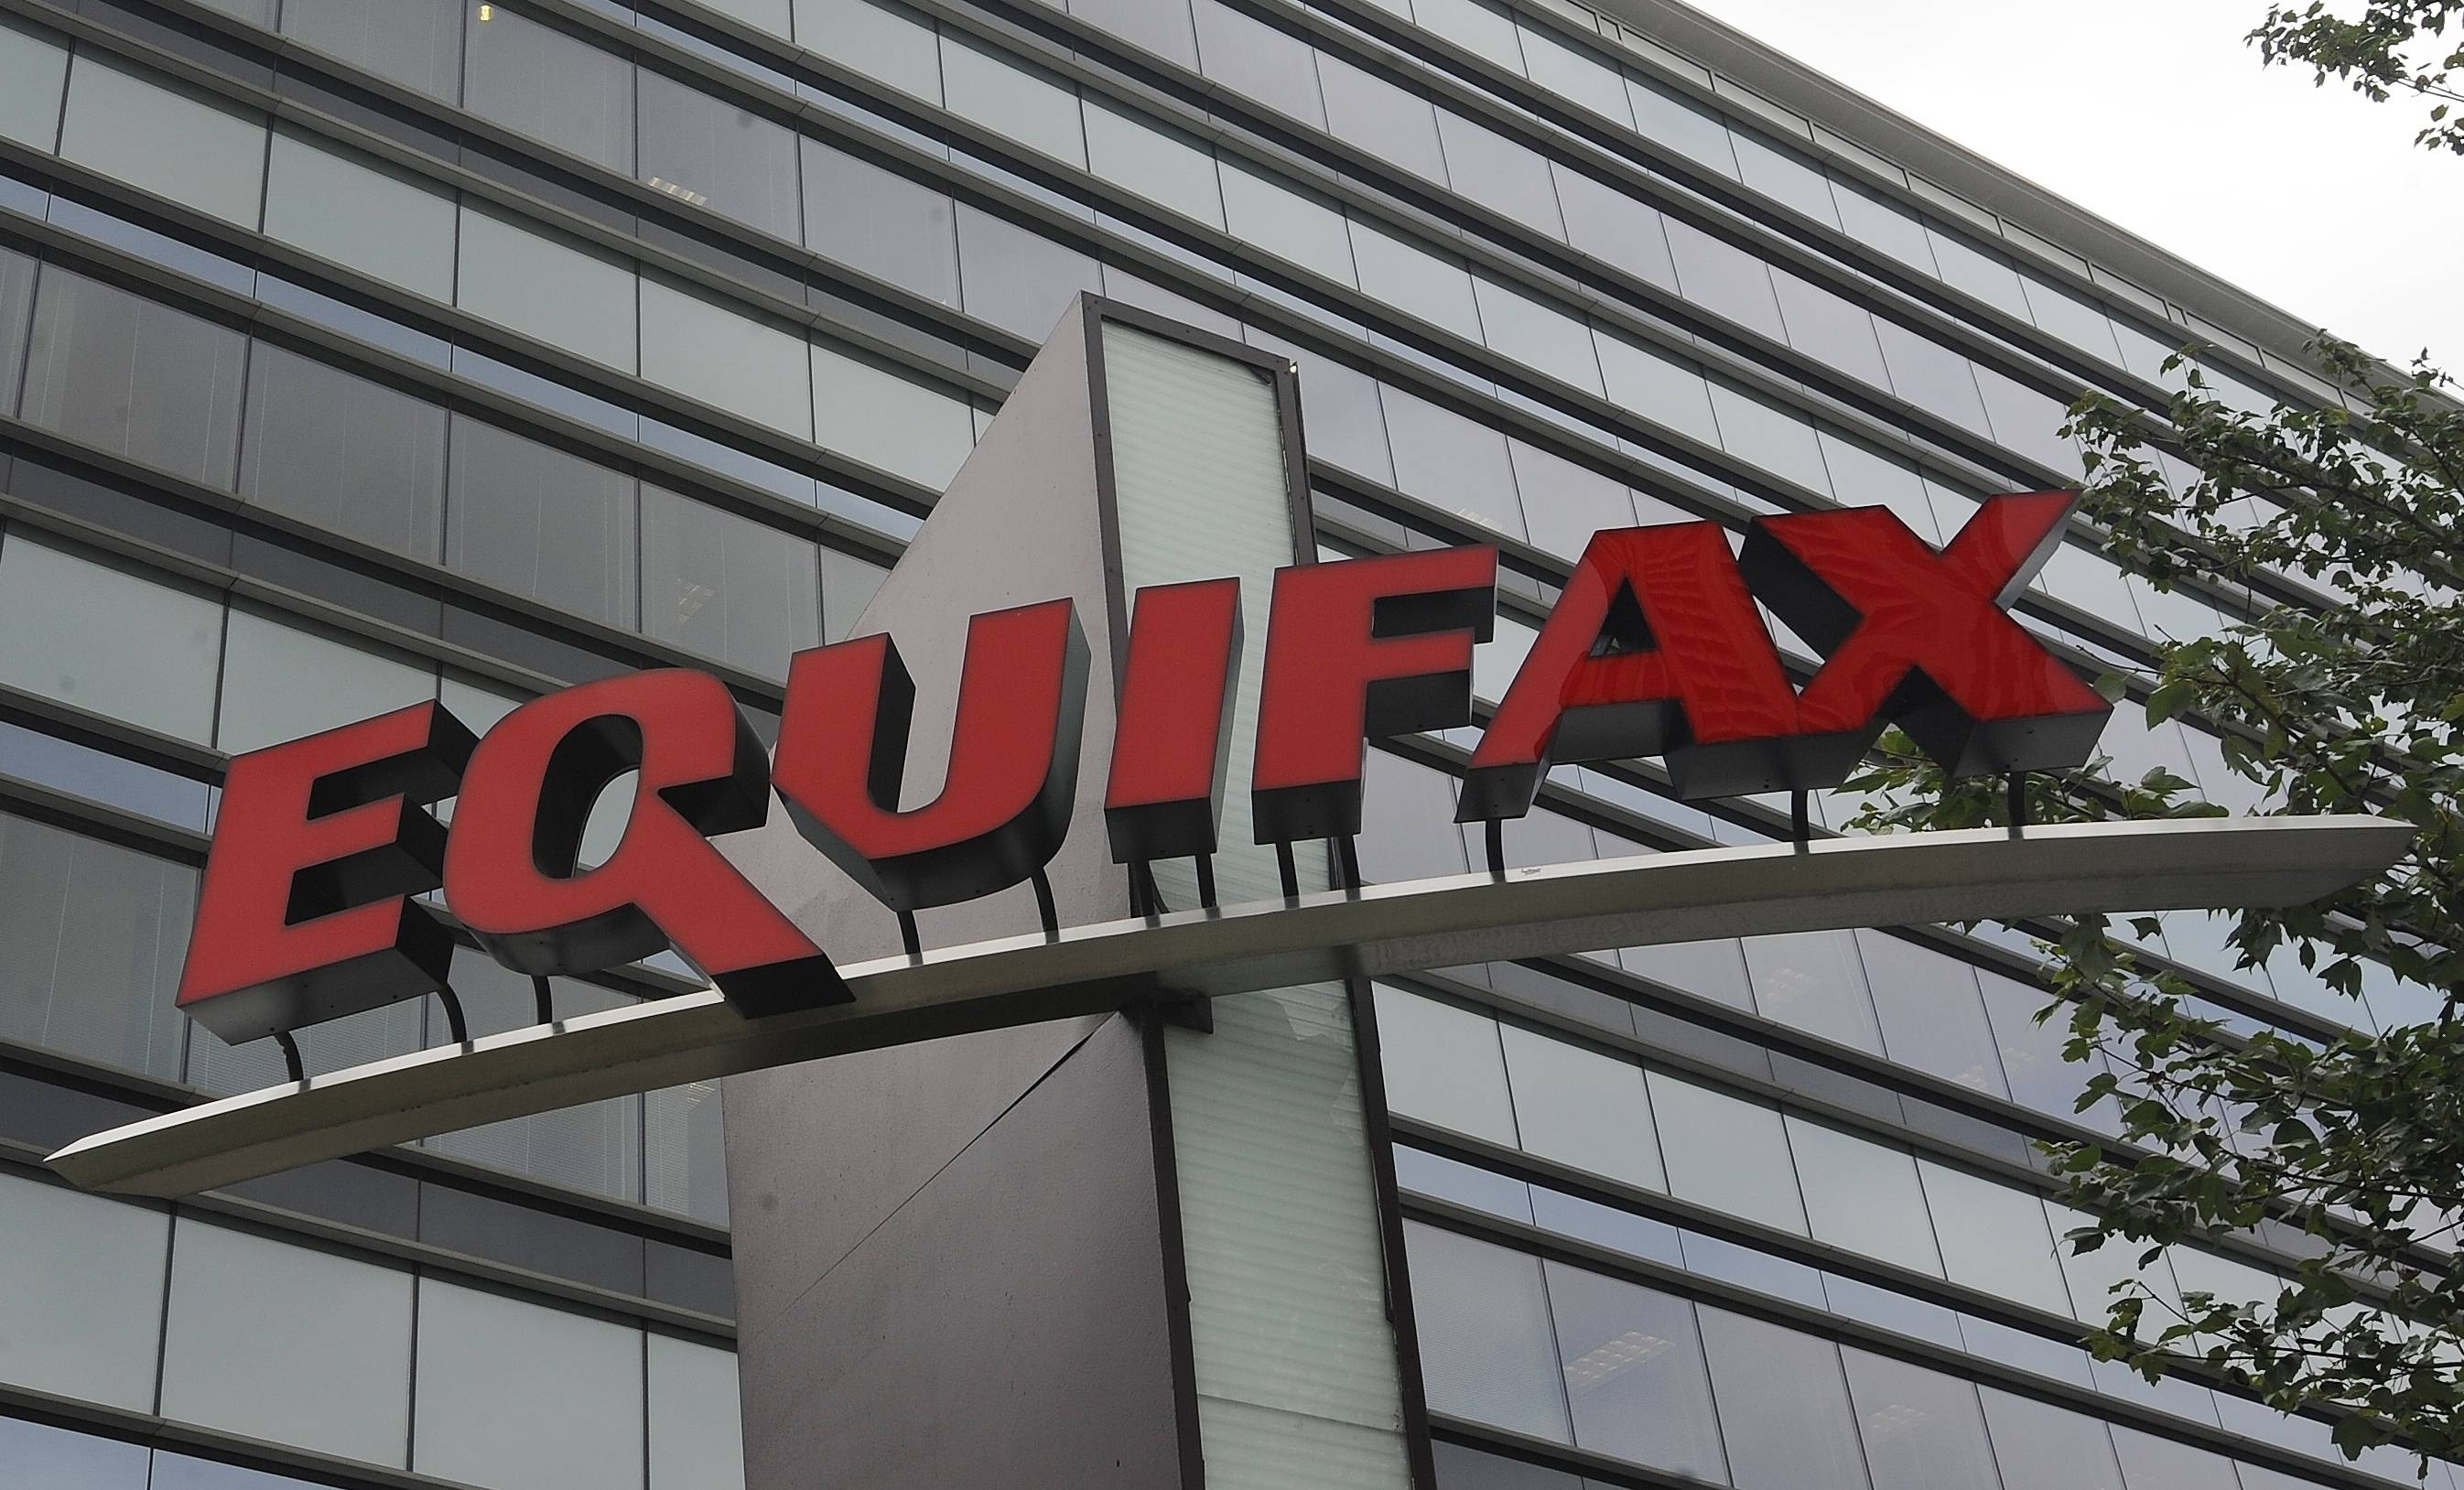 The scenario personal finance and credit experts feared most about the heist of consumer data from Equifax may already be underway: Criminals are using the stolen information to apply for mortgages, credit cards, student loans and racking up substantial debts.